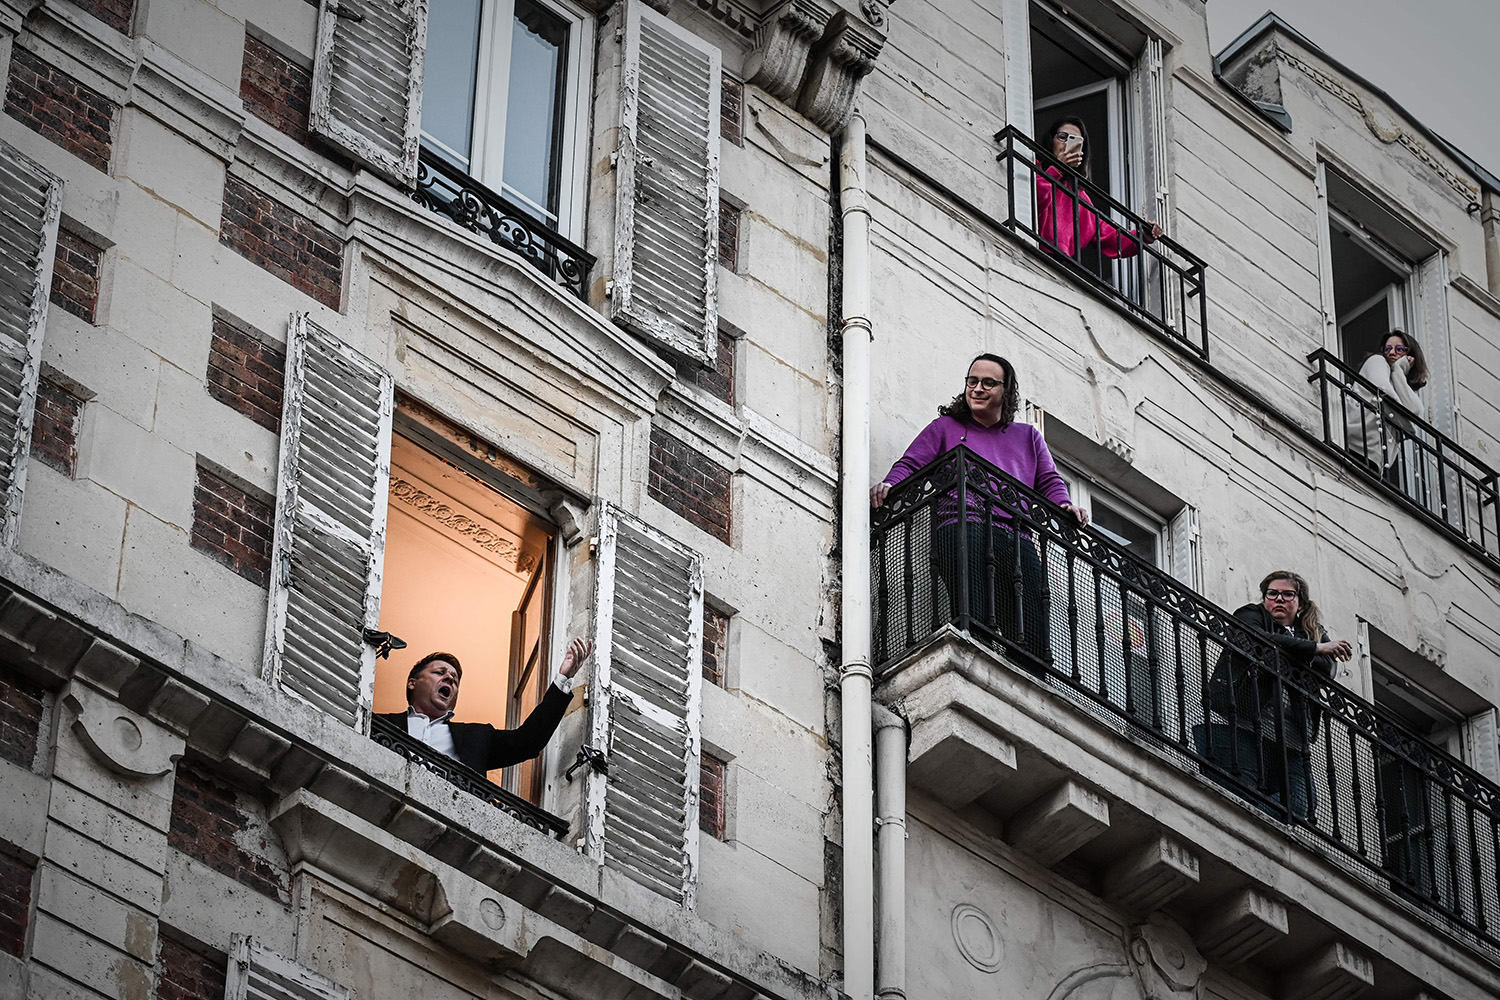 """French opera singer Stéphane Sénéchal performs the song """"O Sole Mio"""" from his window in Paris on March 26. PHILIPPE LOPEZ/AFP via Getty Images"""